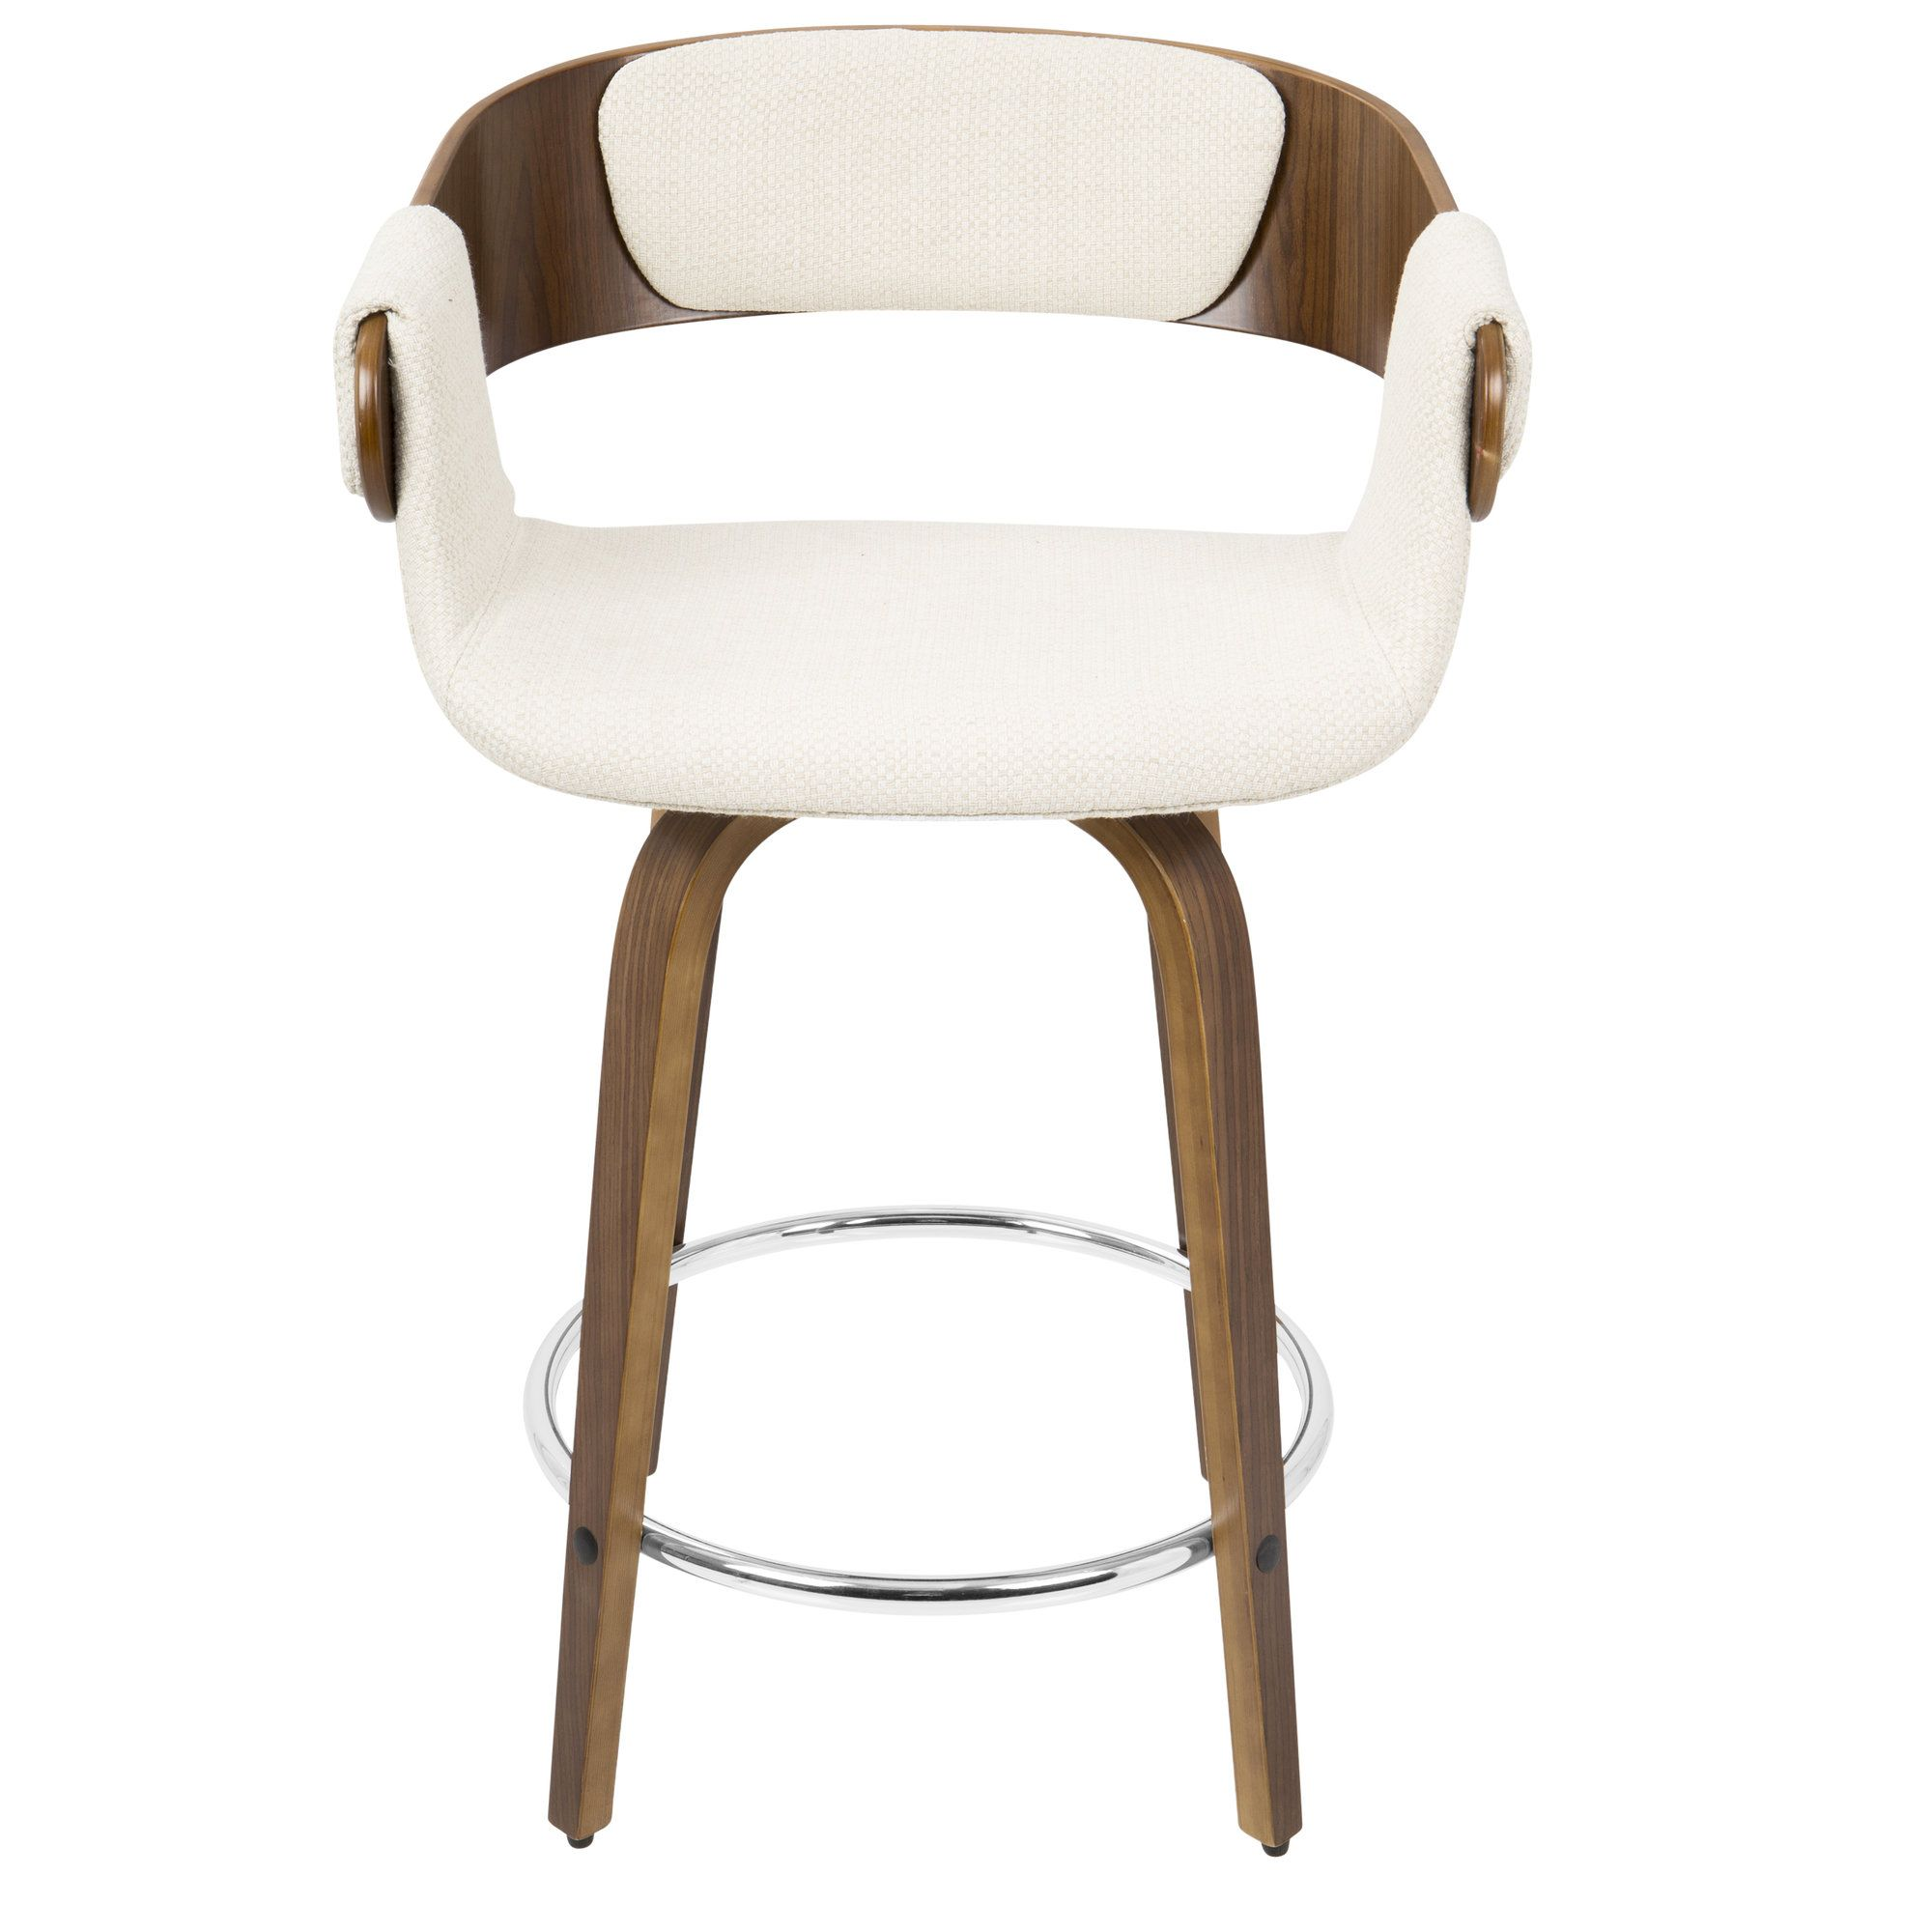 Lexie 23 75 Bar Stool Modern Counter Stools Counter Stools Stool